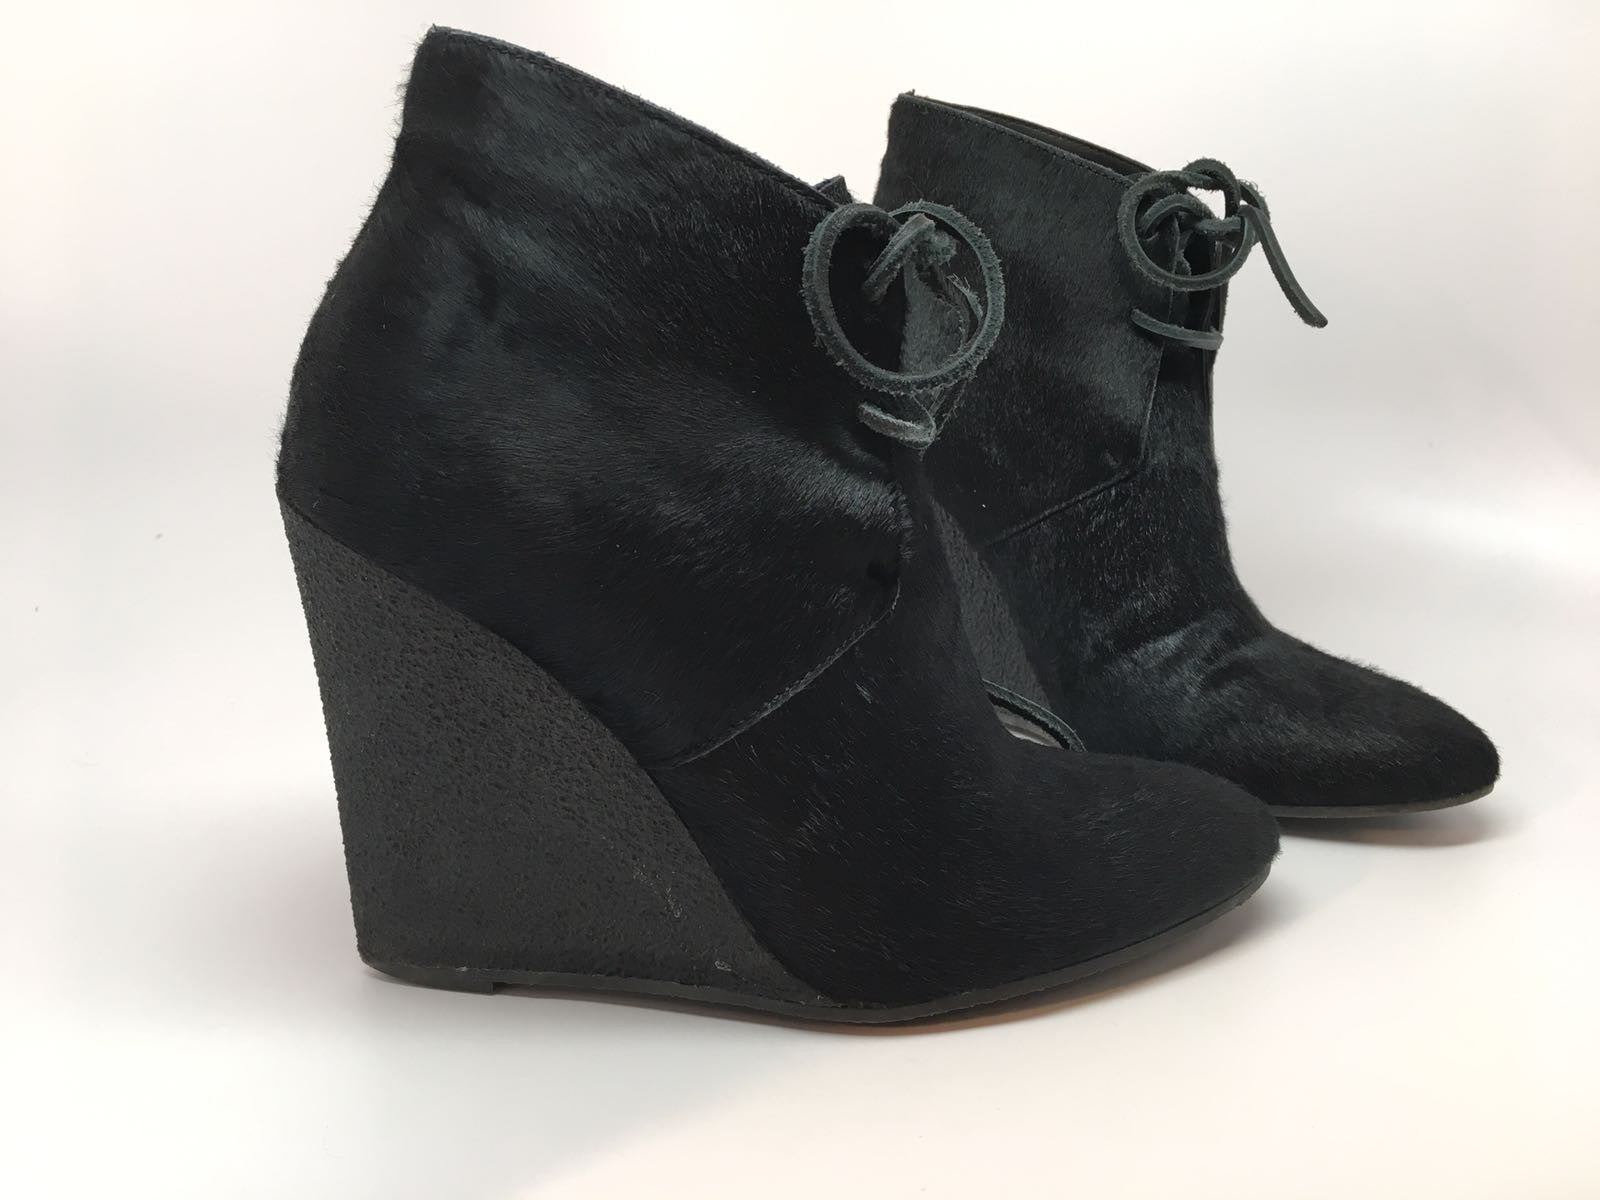 BURBERRY PRORSUM CALF HAIR WEDGE ANKLE BOOT - SIZE 36